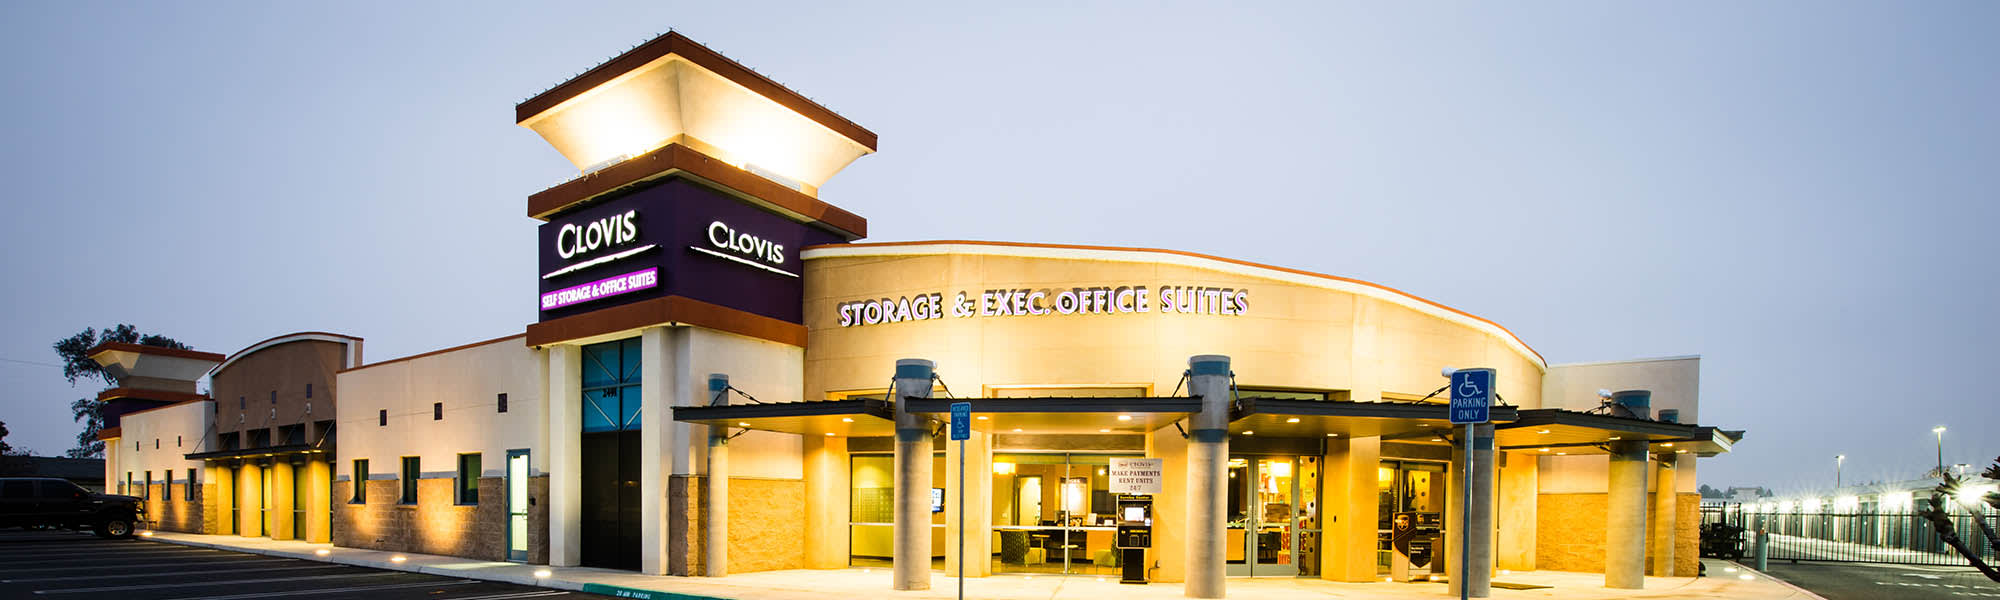 Map and directions to the self storage facility in Clovis